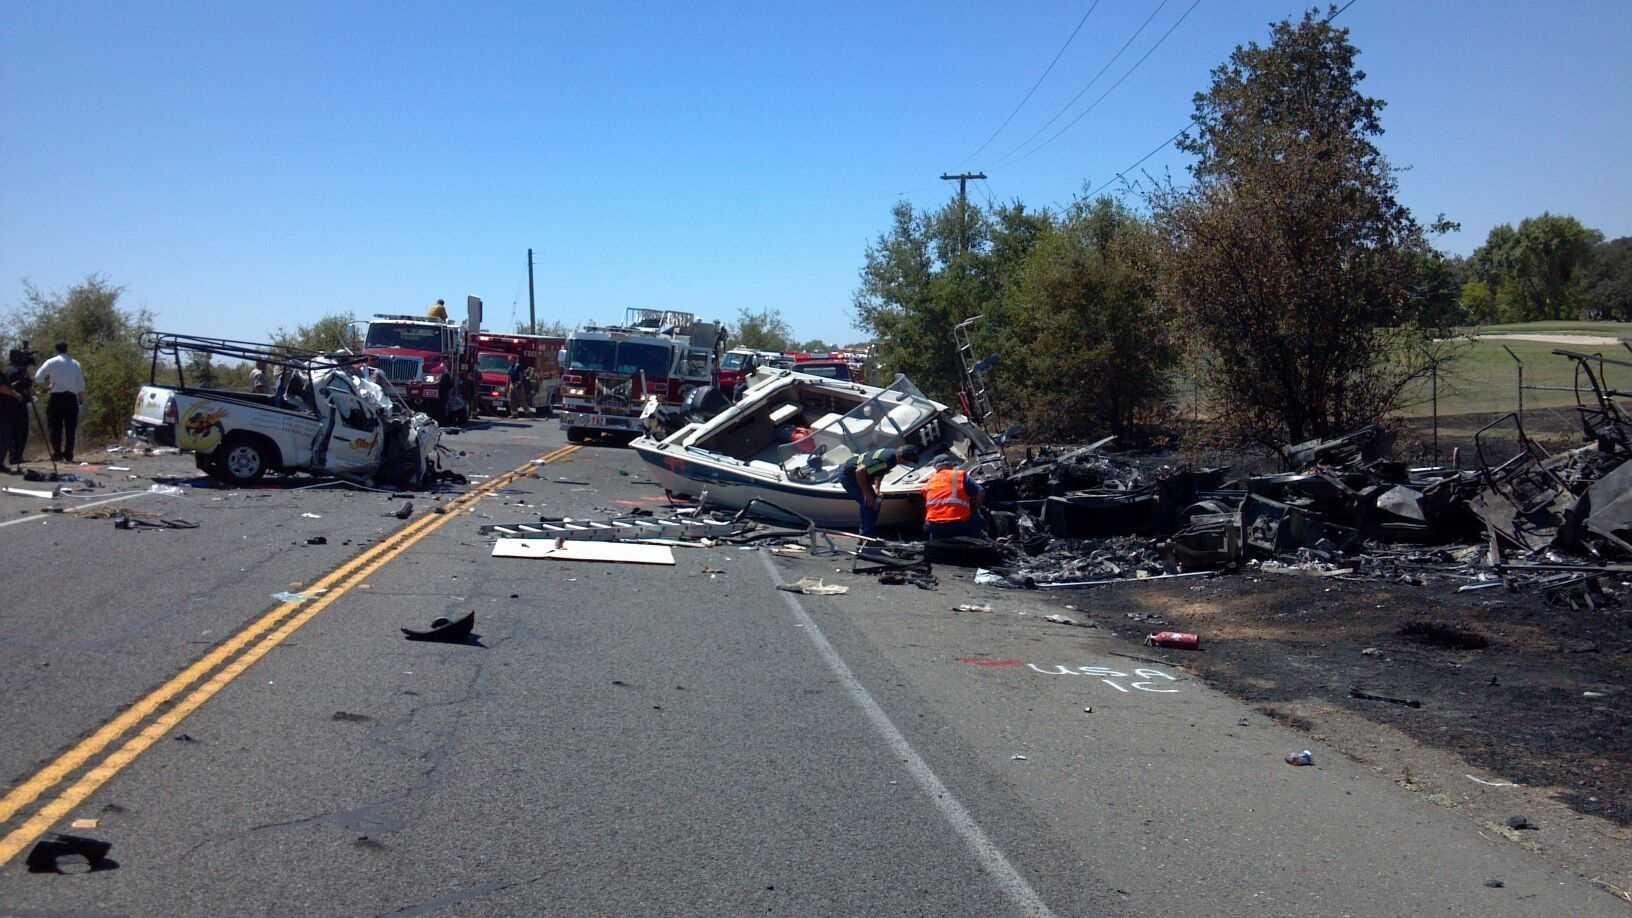 One person was killed and two injured in a head-on crash along Jackson Highway Wednesday in Rancho Murieta.